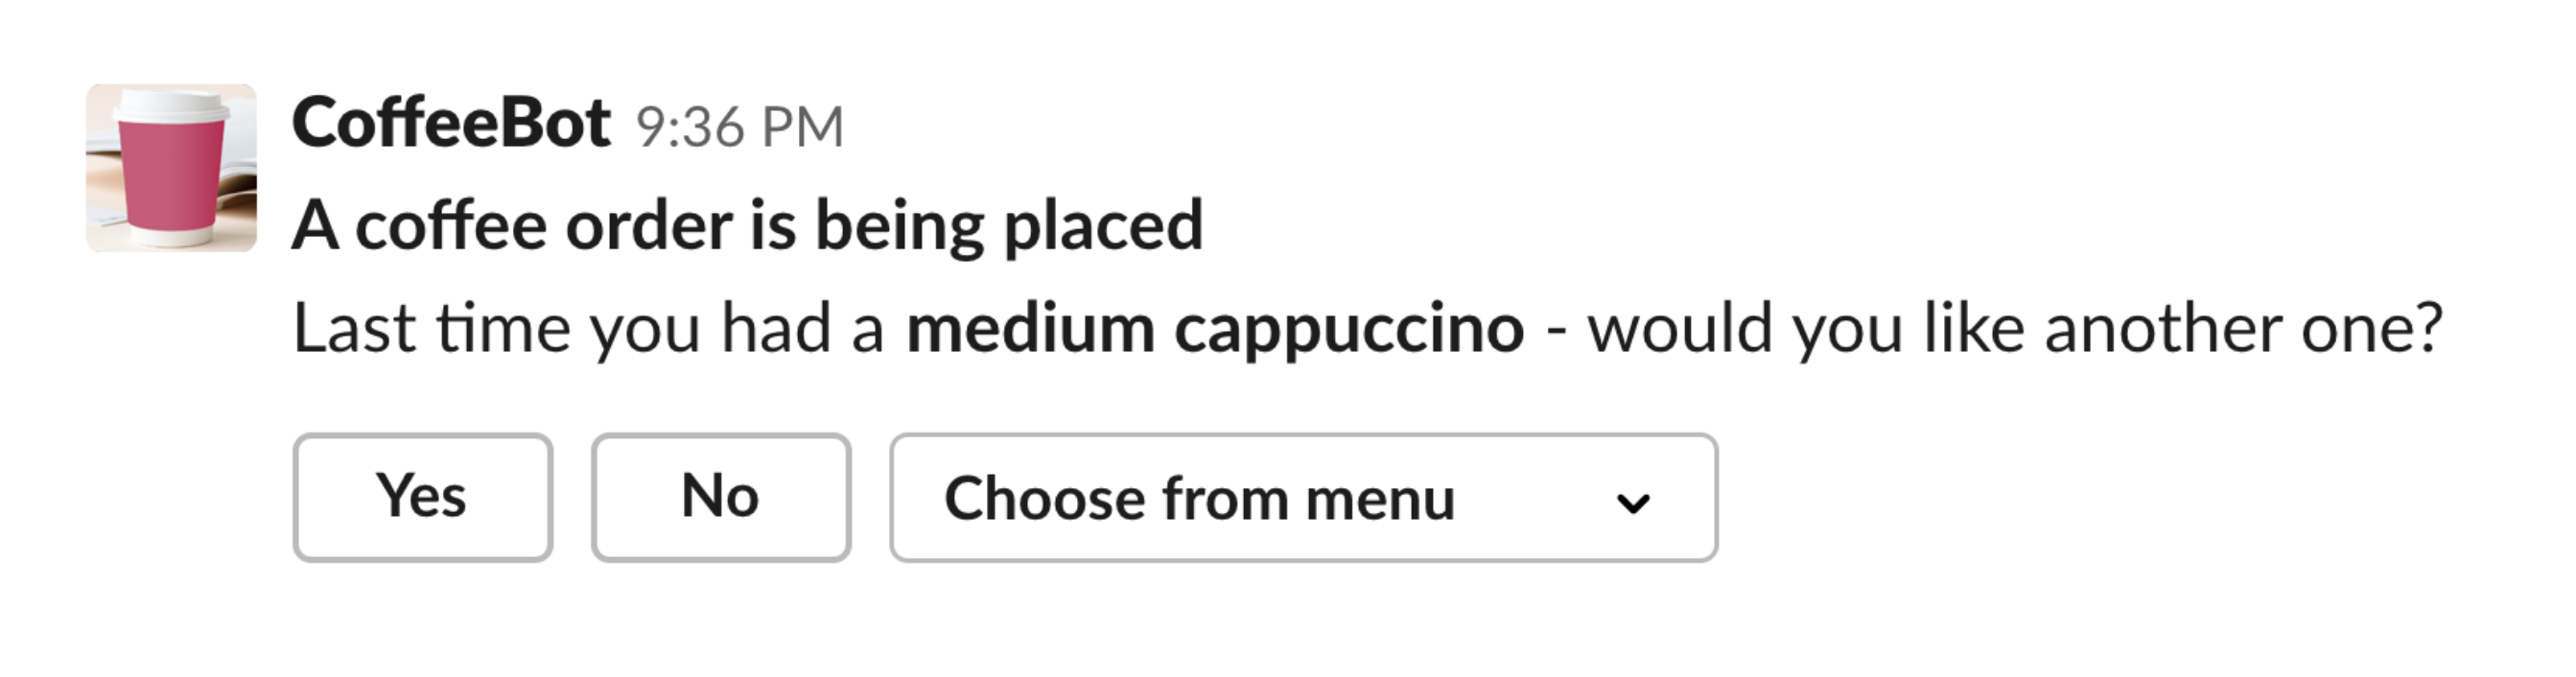 Coffee ordering app message showing previous order and asking whether to reorder it with yes or no buttons